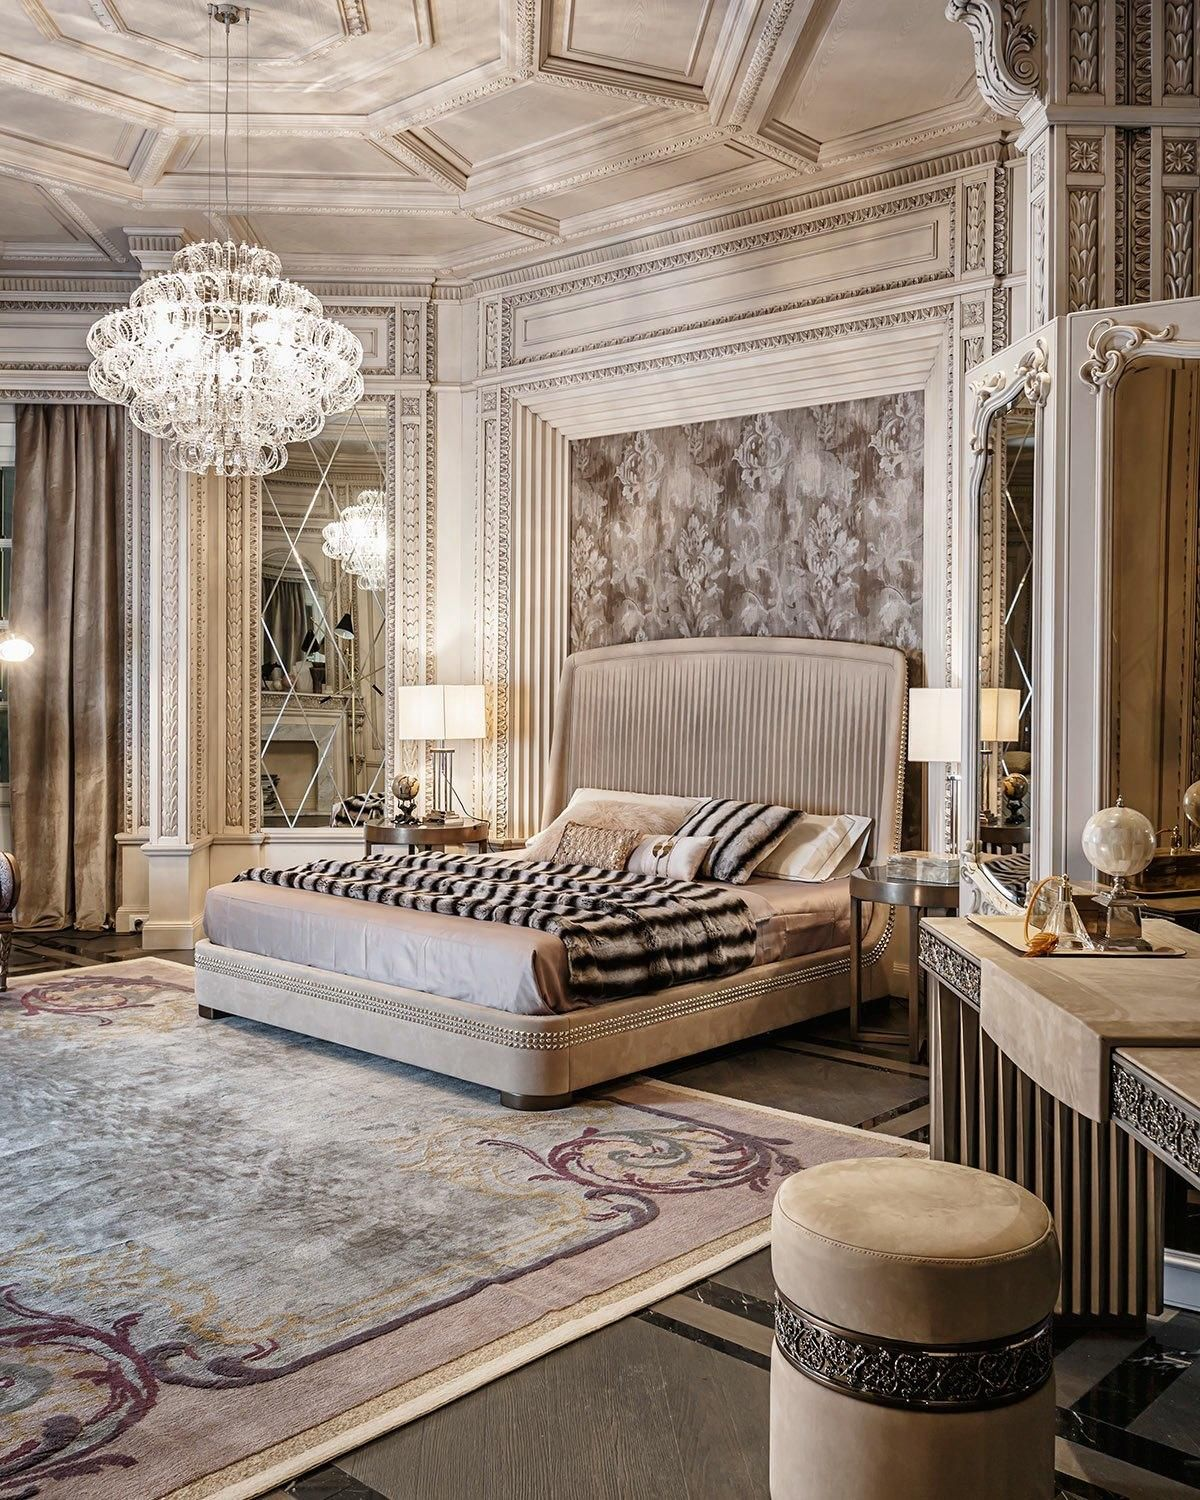 stylist and luxury designer bedrooms. Neoclassical And Art Deco Features In Two Luxurious Interiors